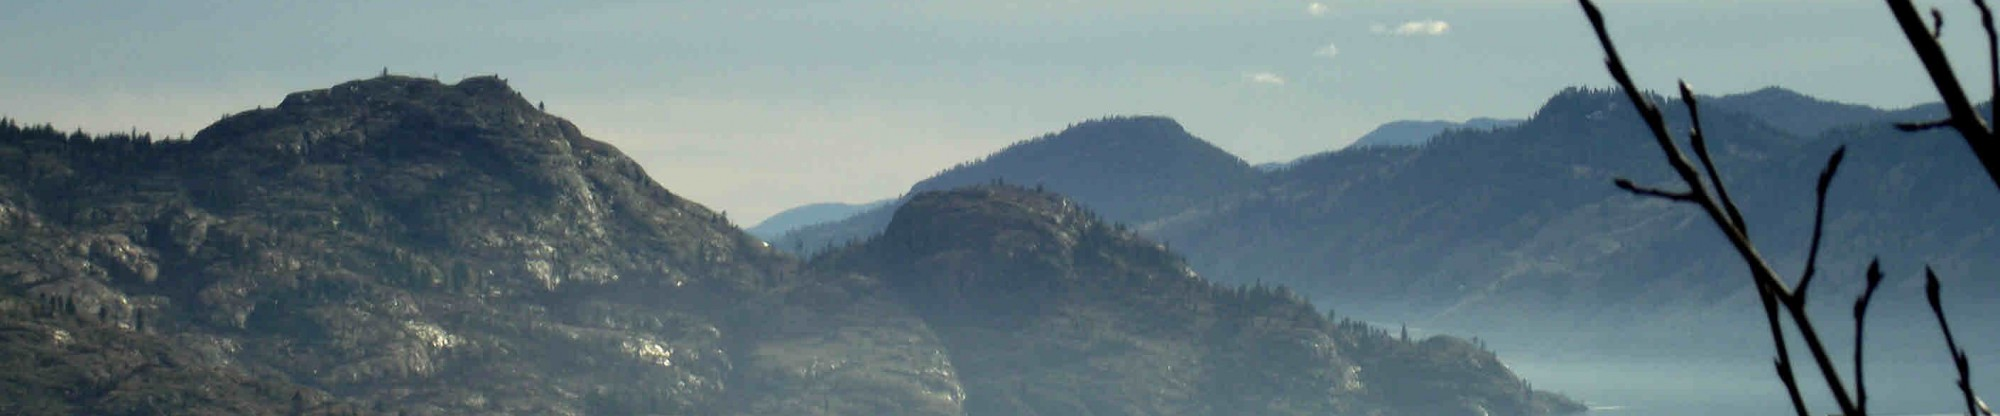 cropped photograph of Okanagan Lake and mountains near Peachland, BC